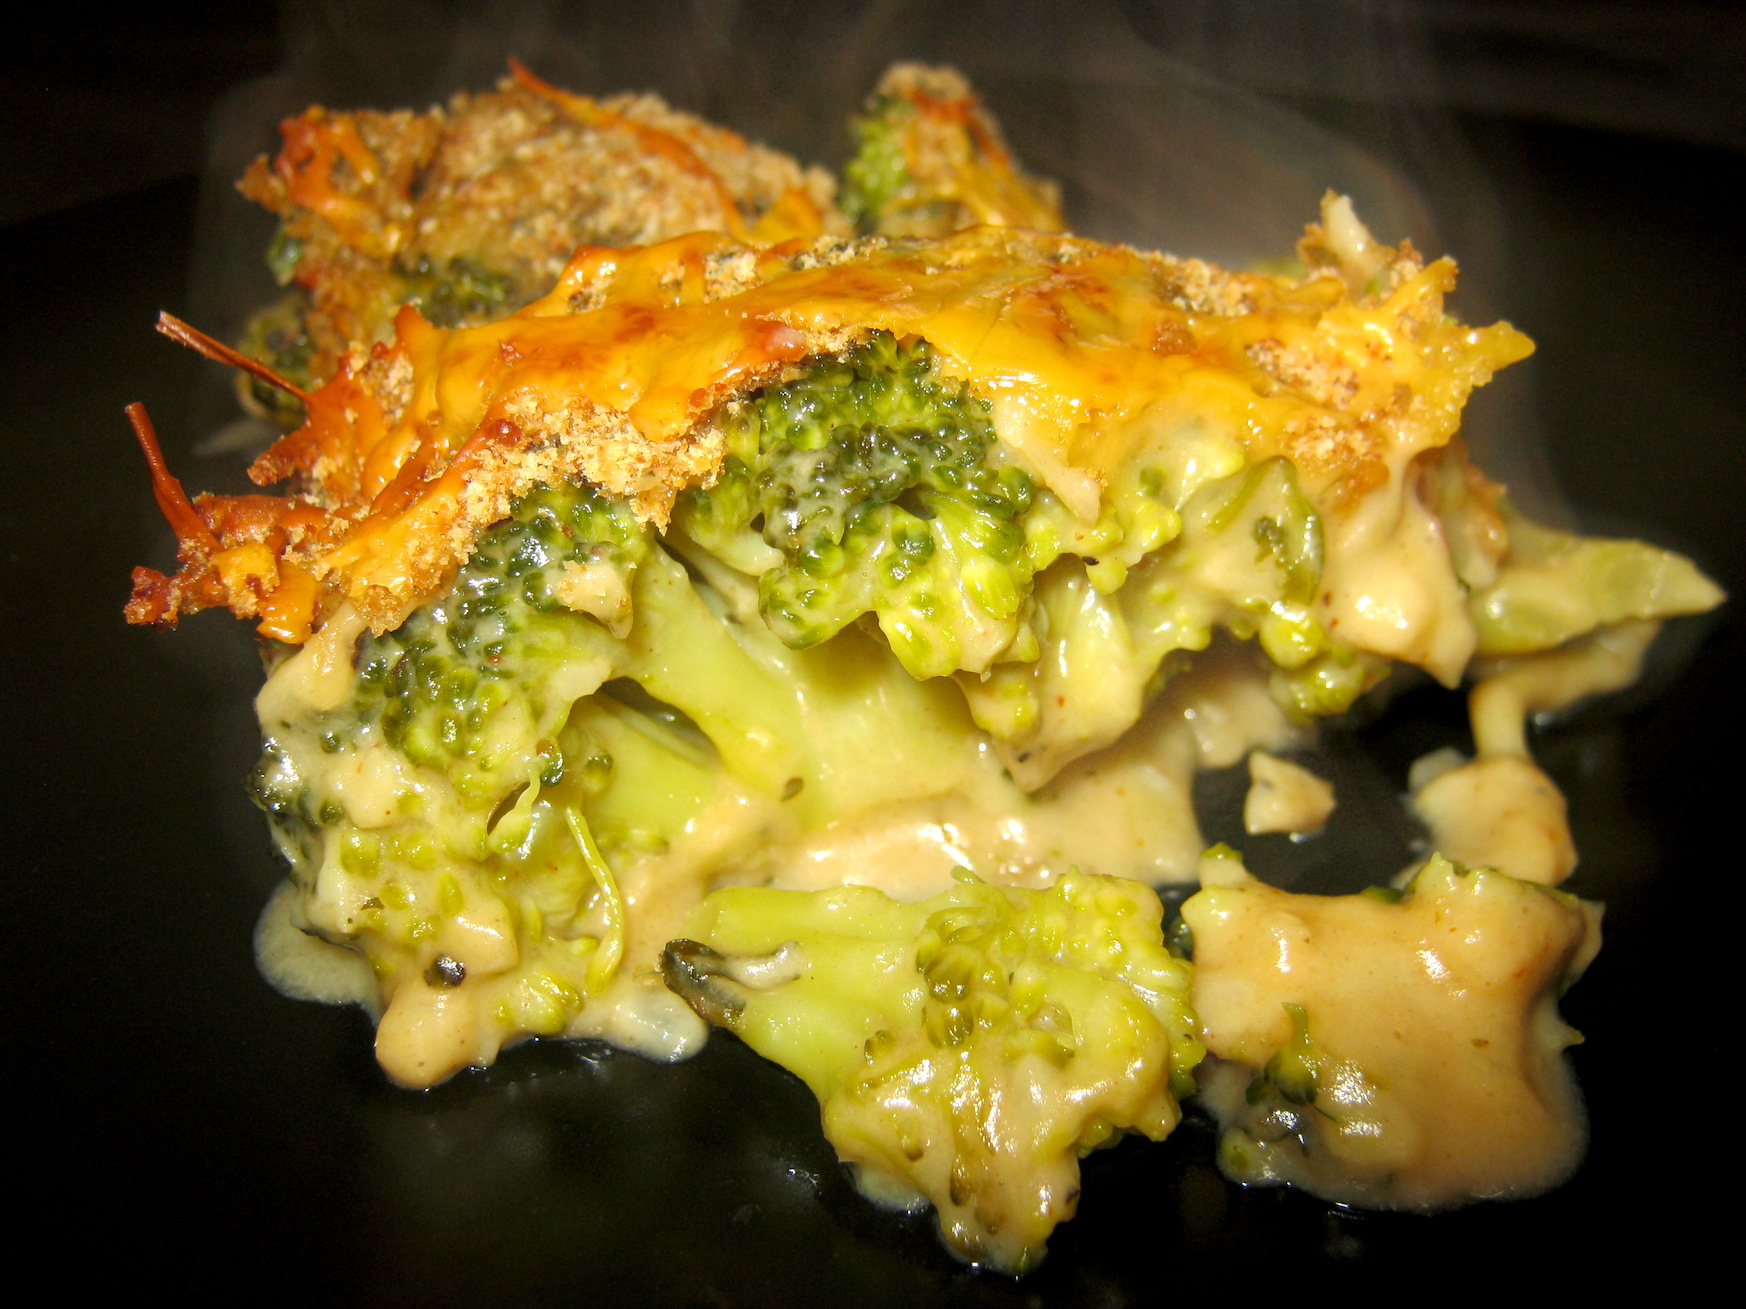 Bellville Baked Broccoli